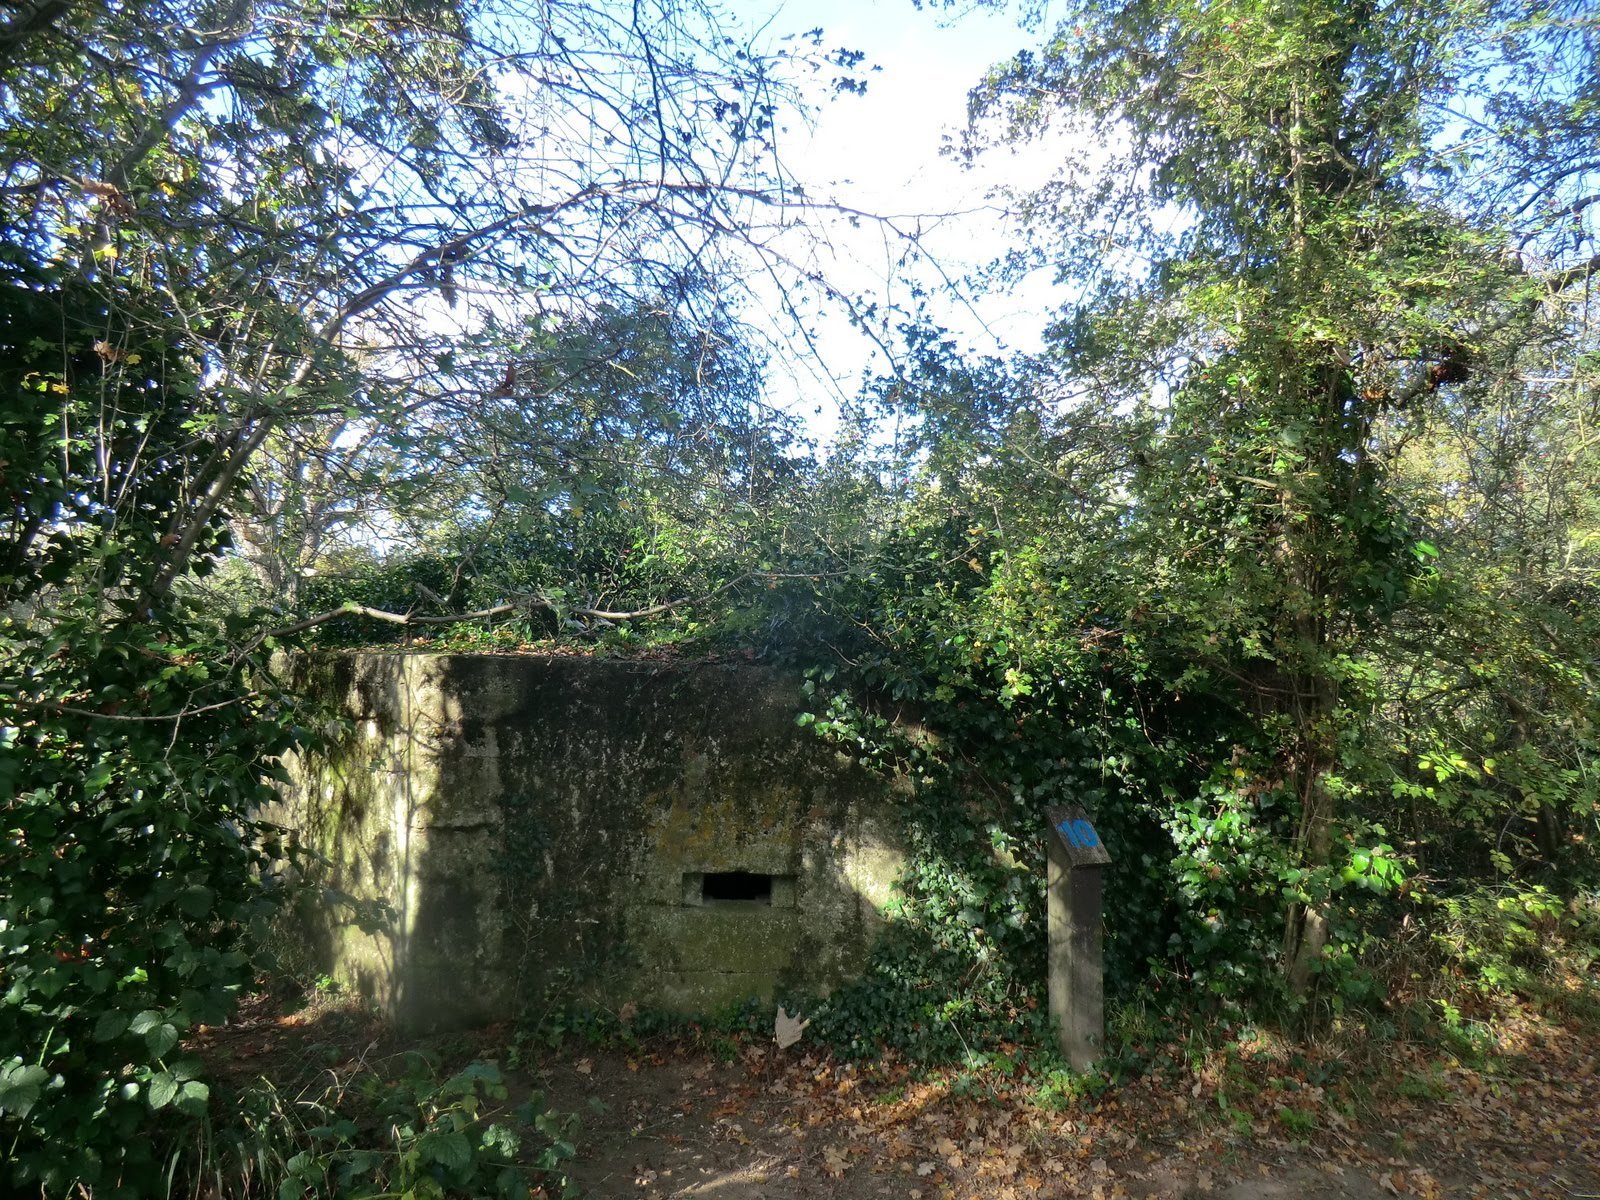 CIMG5433 World War II pillbox, Haysden Country Park